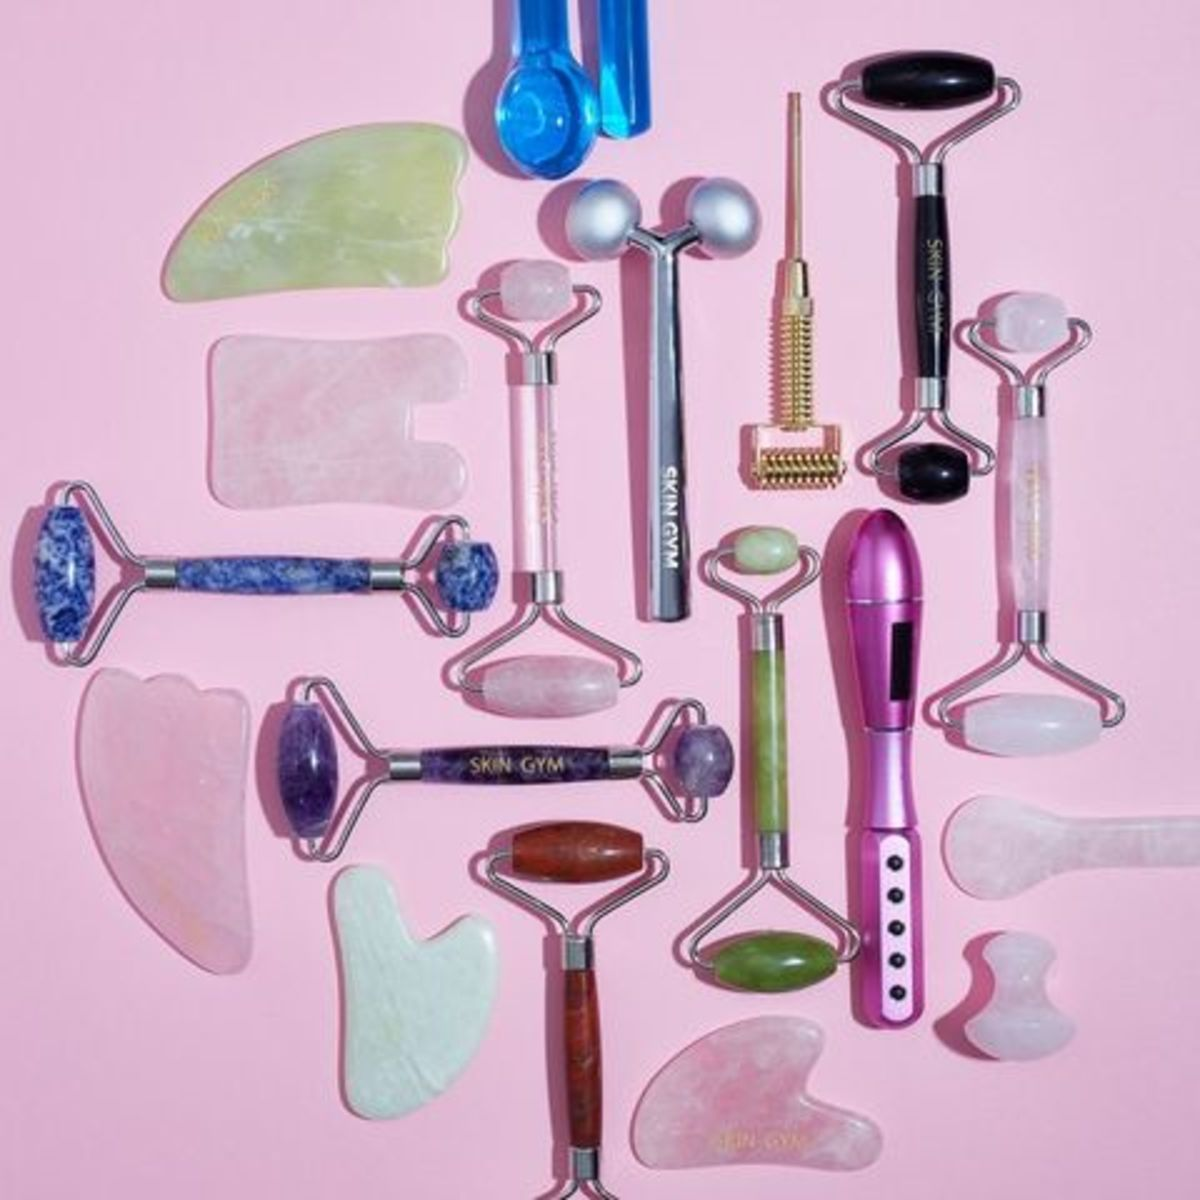 beauty tools gift guide